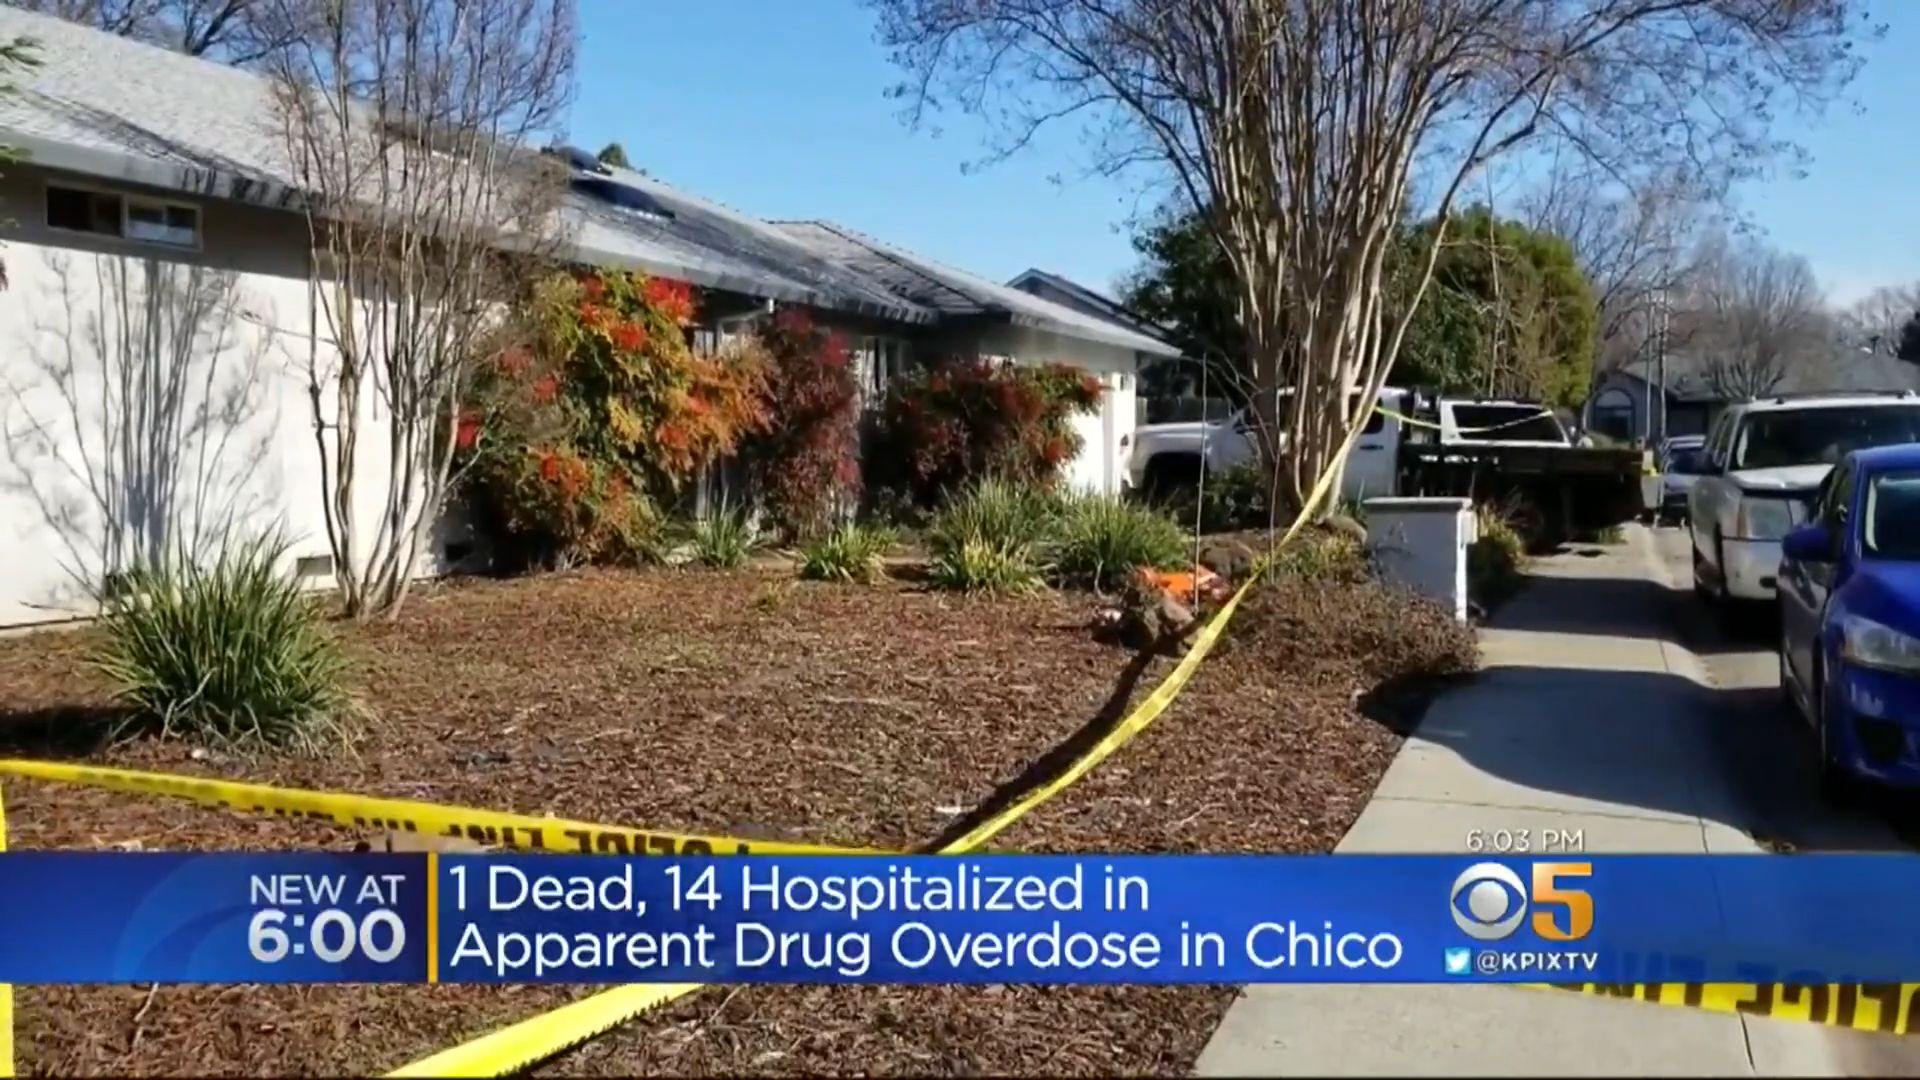 'Mass Overdose' in California House Leaves 1 Dead, 12 in the Hospital